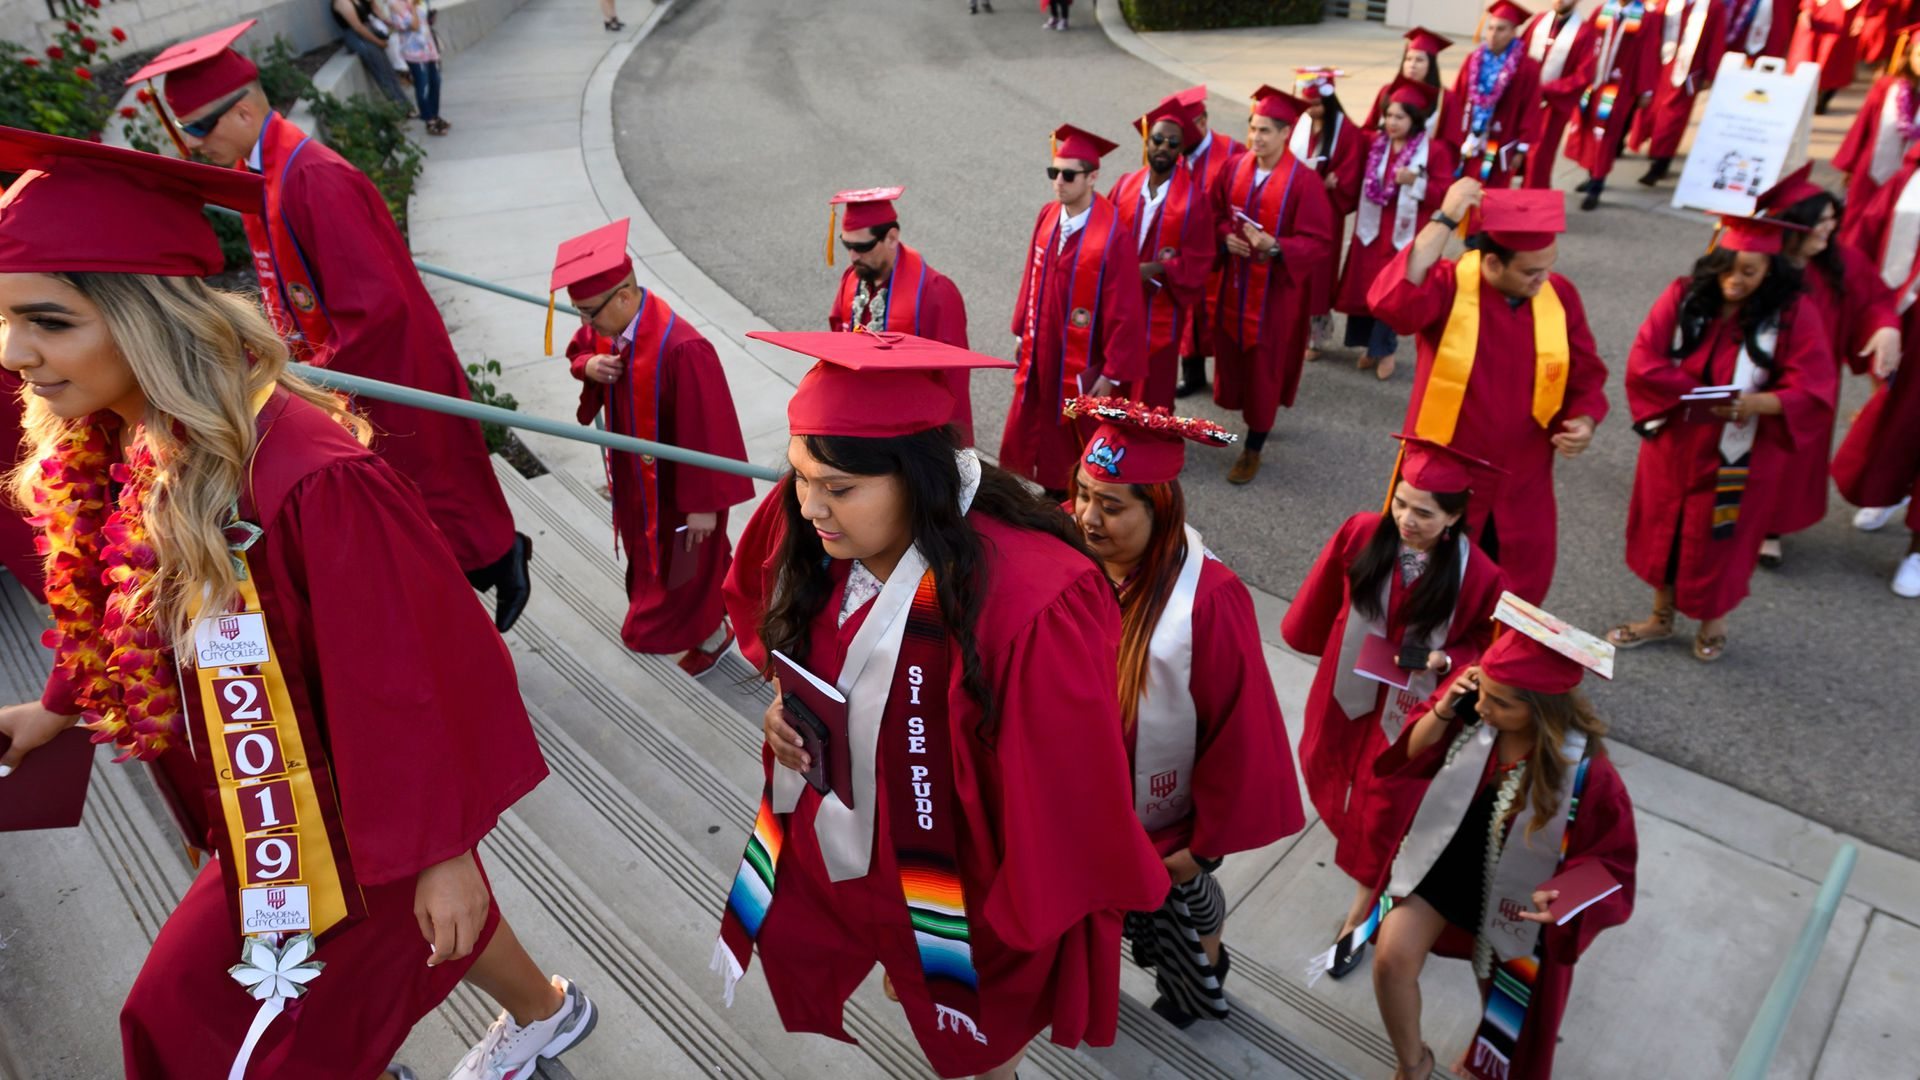 Students earning degrees at Pasadena City College participate in the graduation ceremony